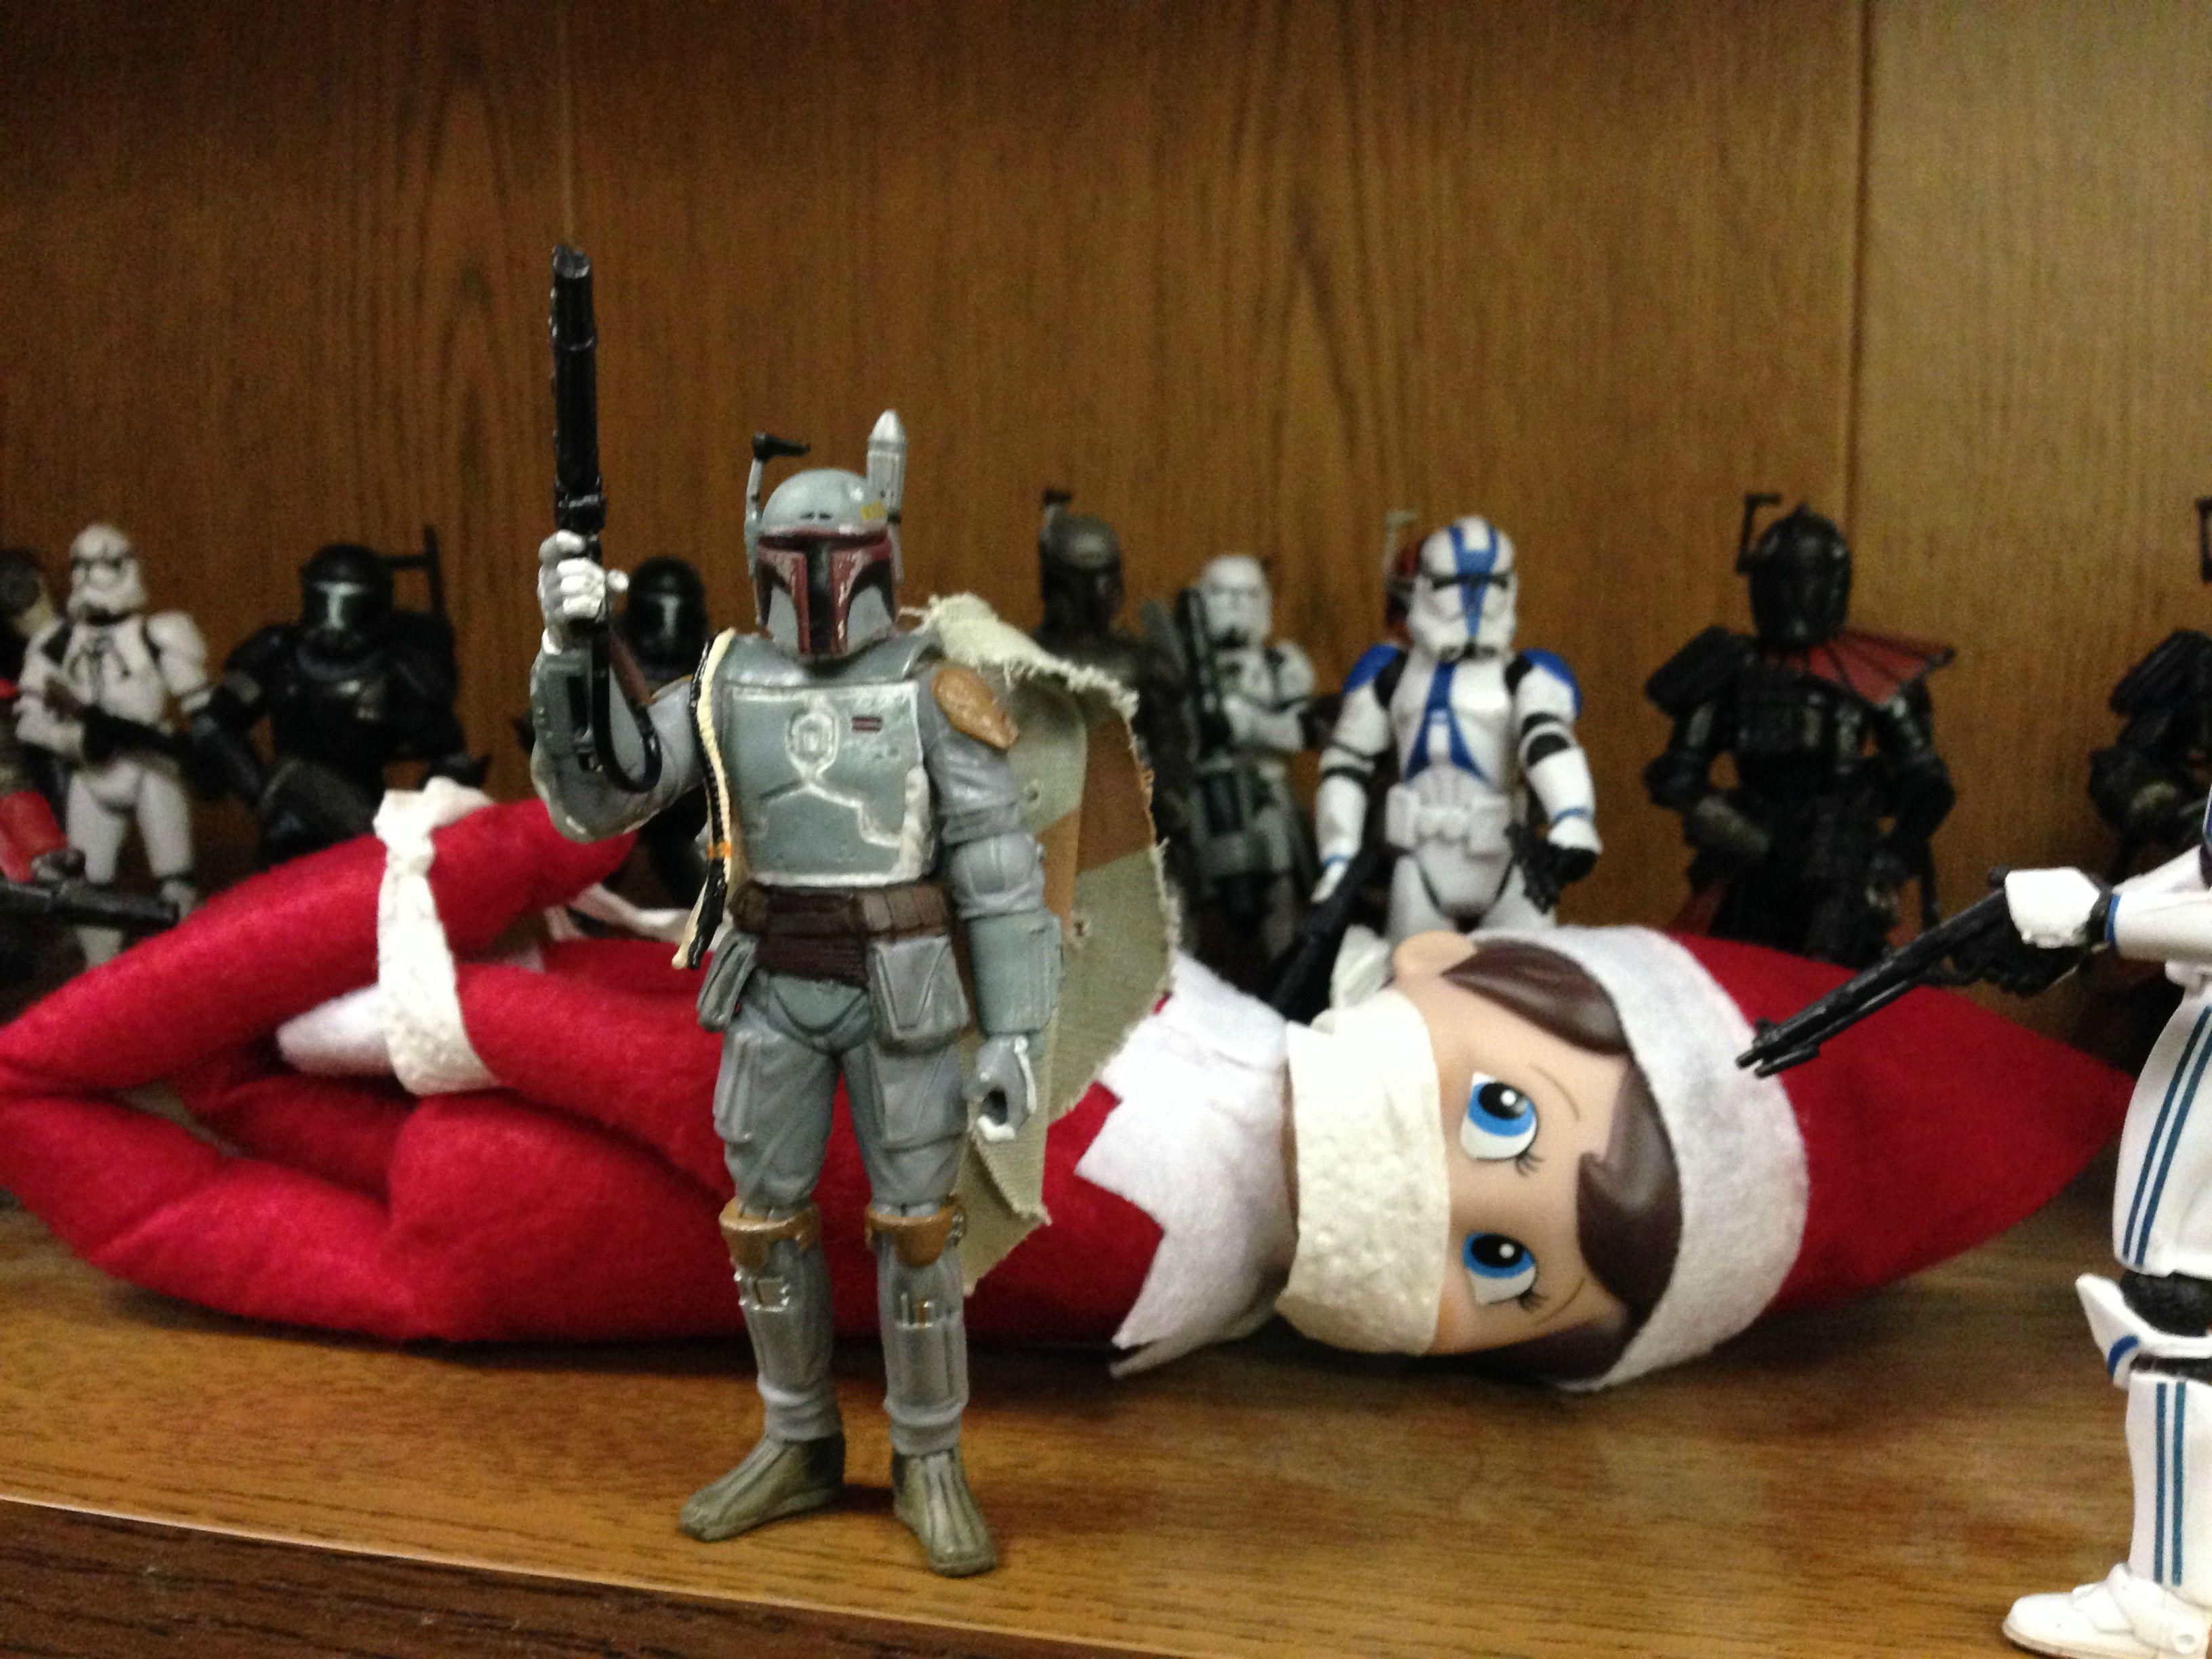 So my office has an Elf on the Shelf, and I decided to